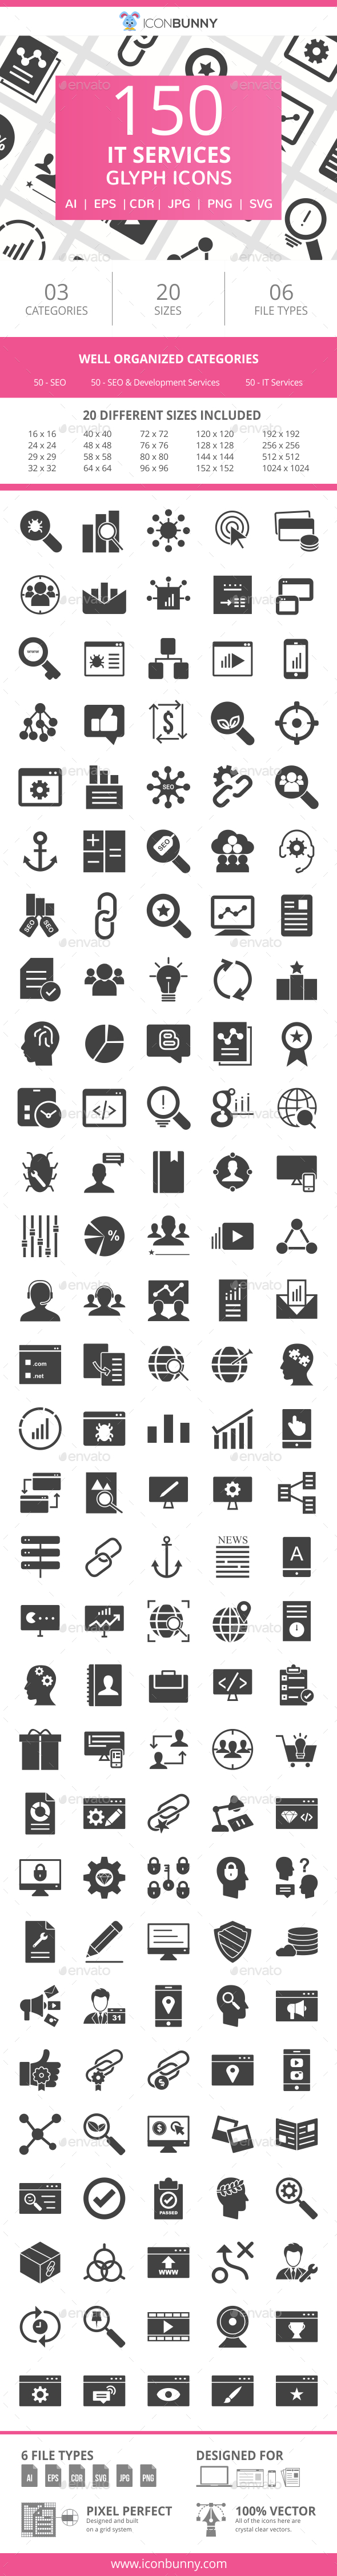 150 IT Services Glyph Icons - Icons